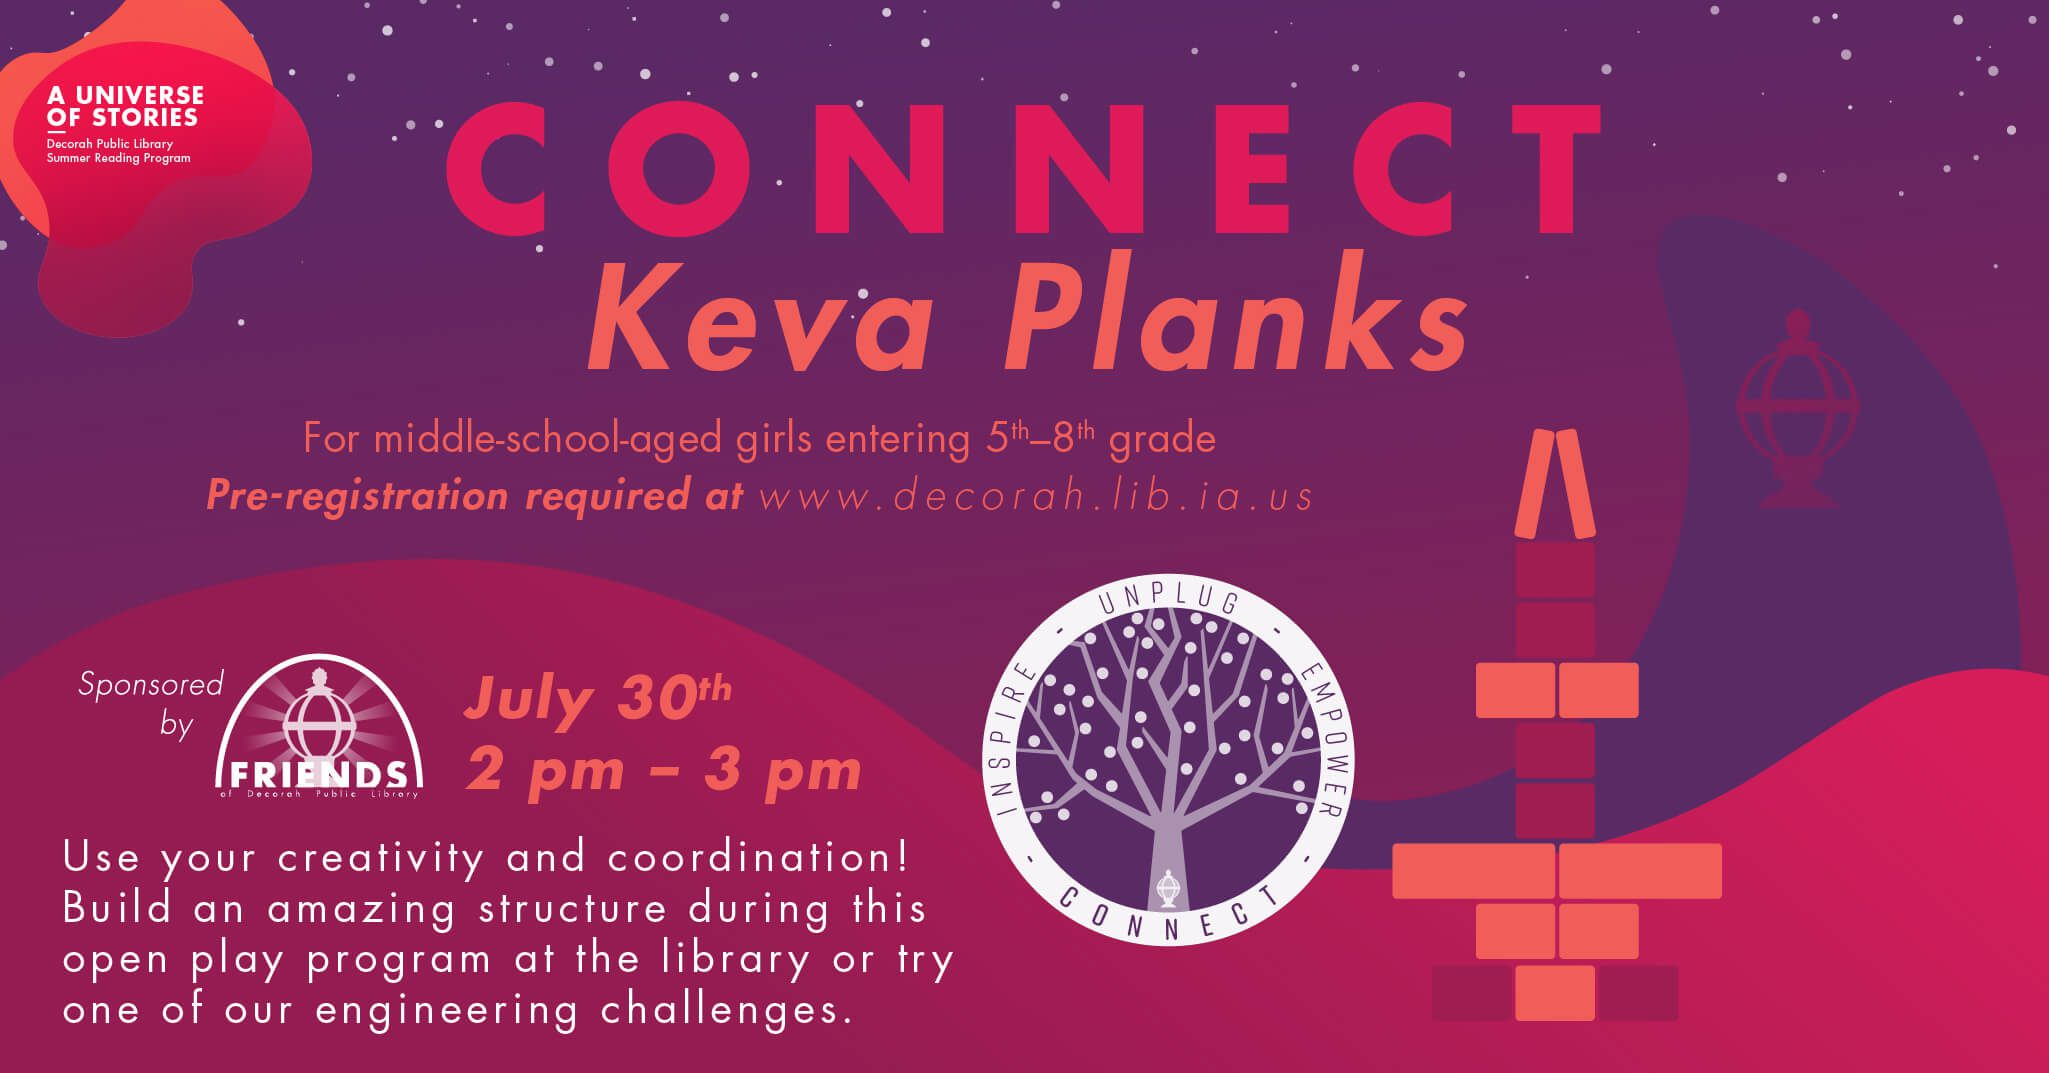 Connect: Keva Planks